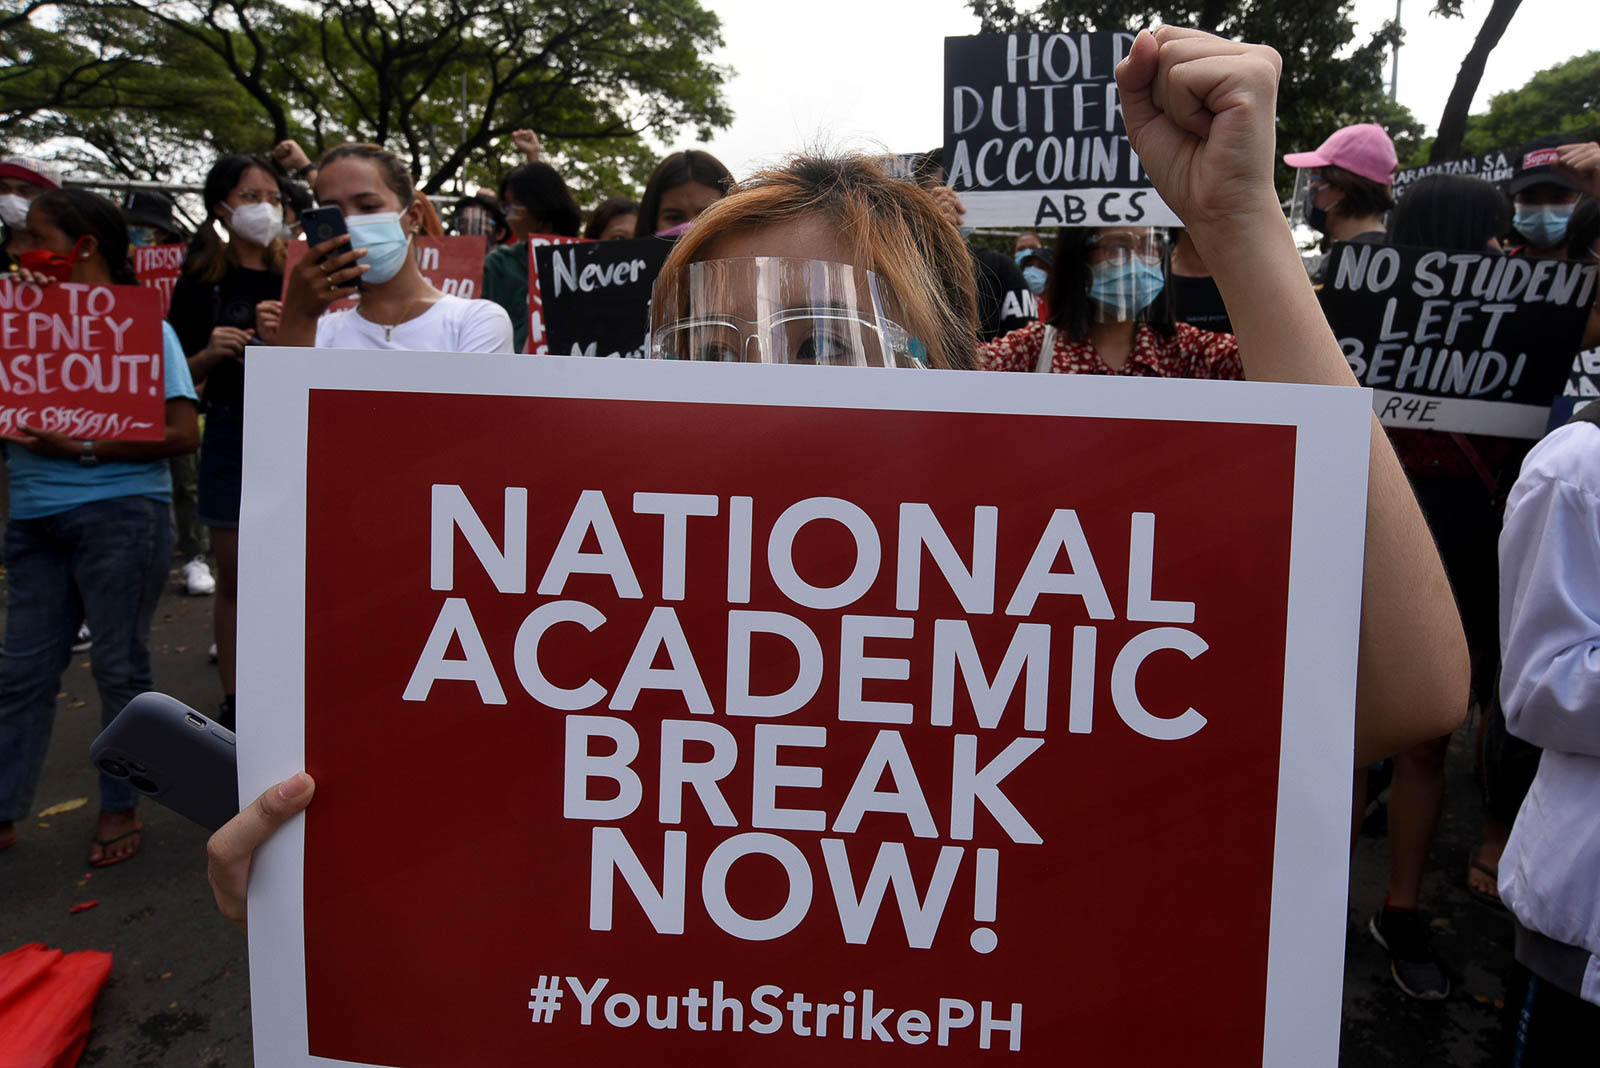 Education protest #YouthStrikePH